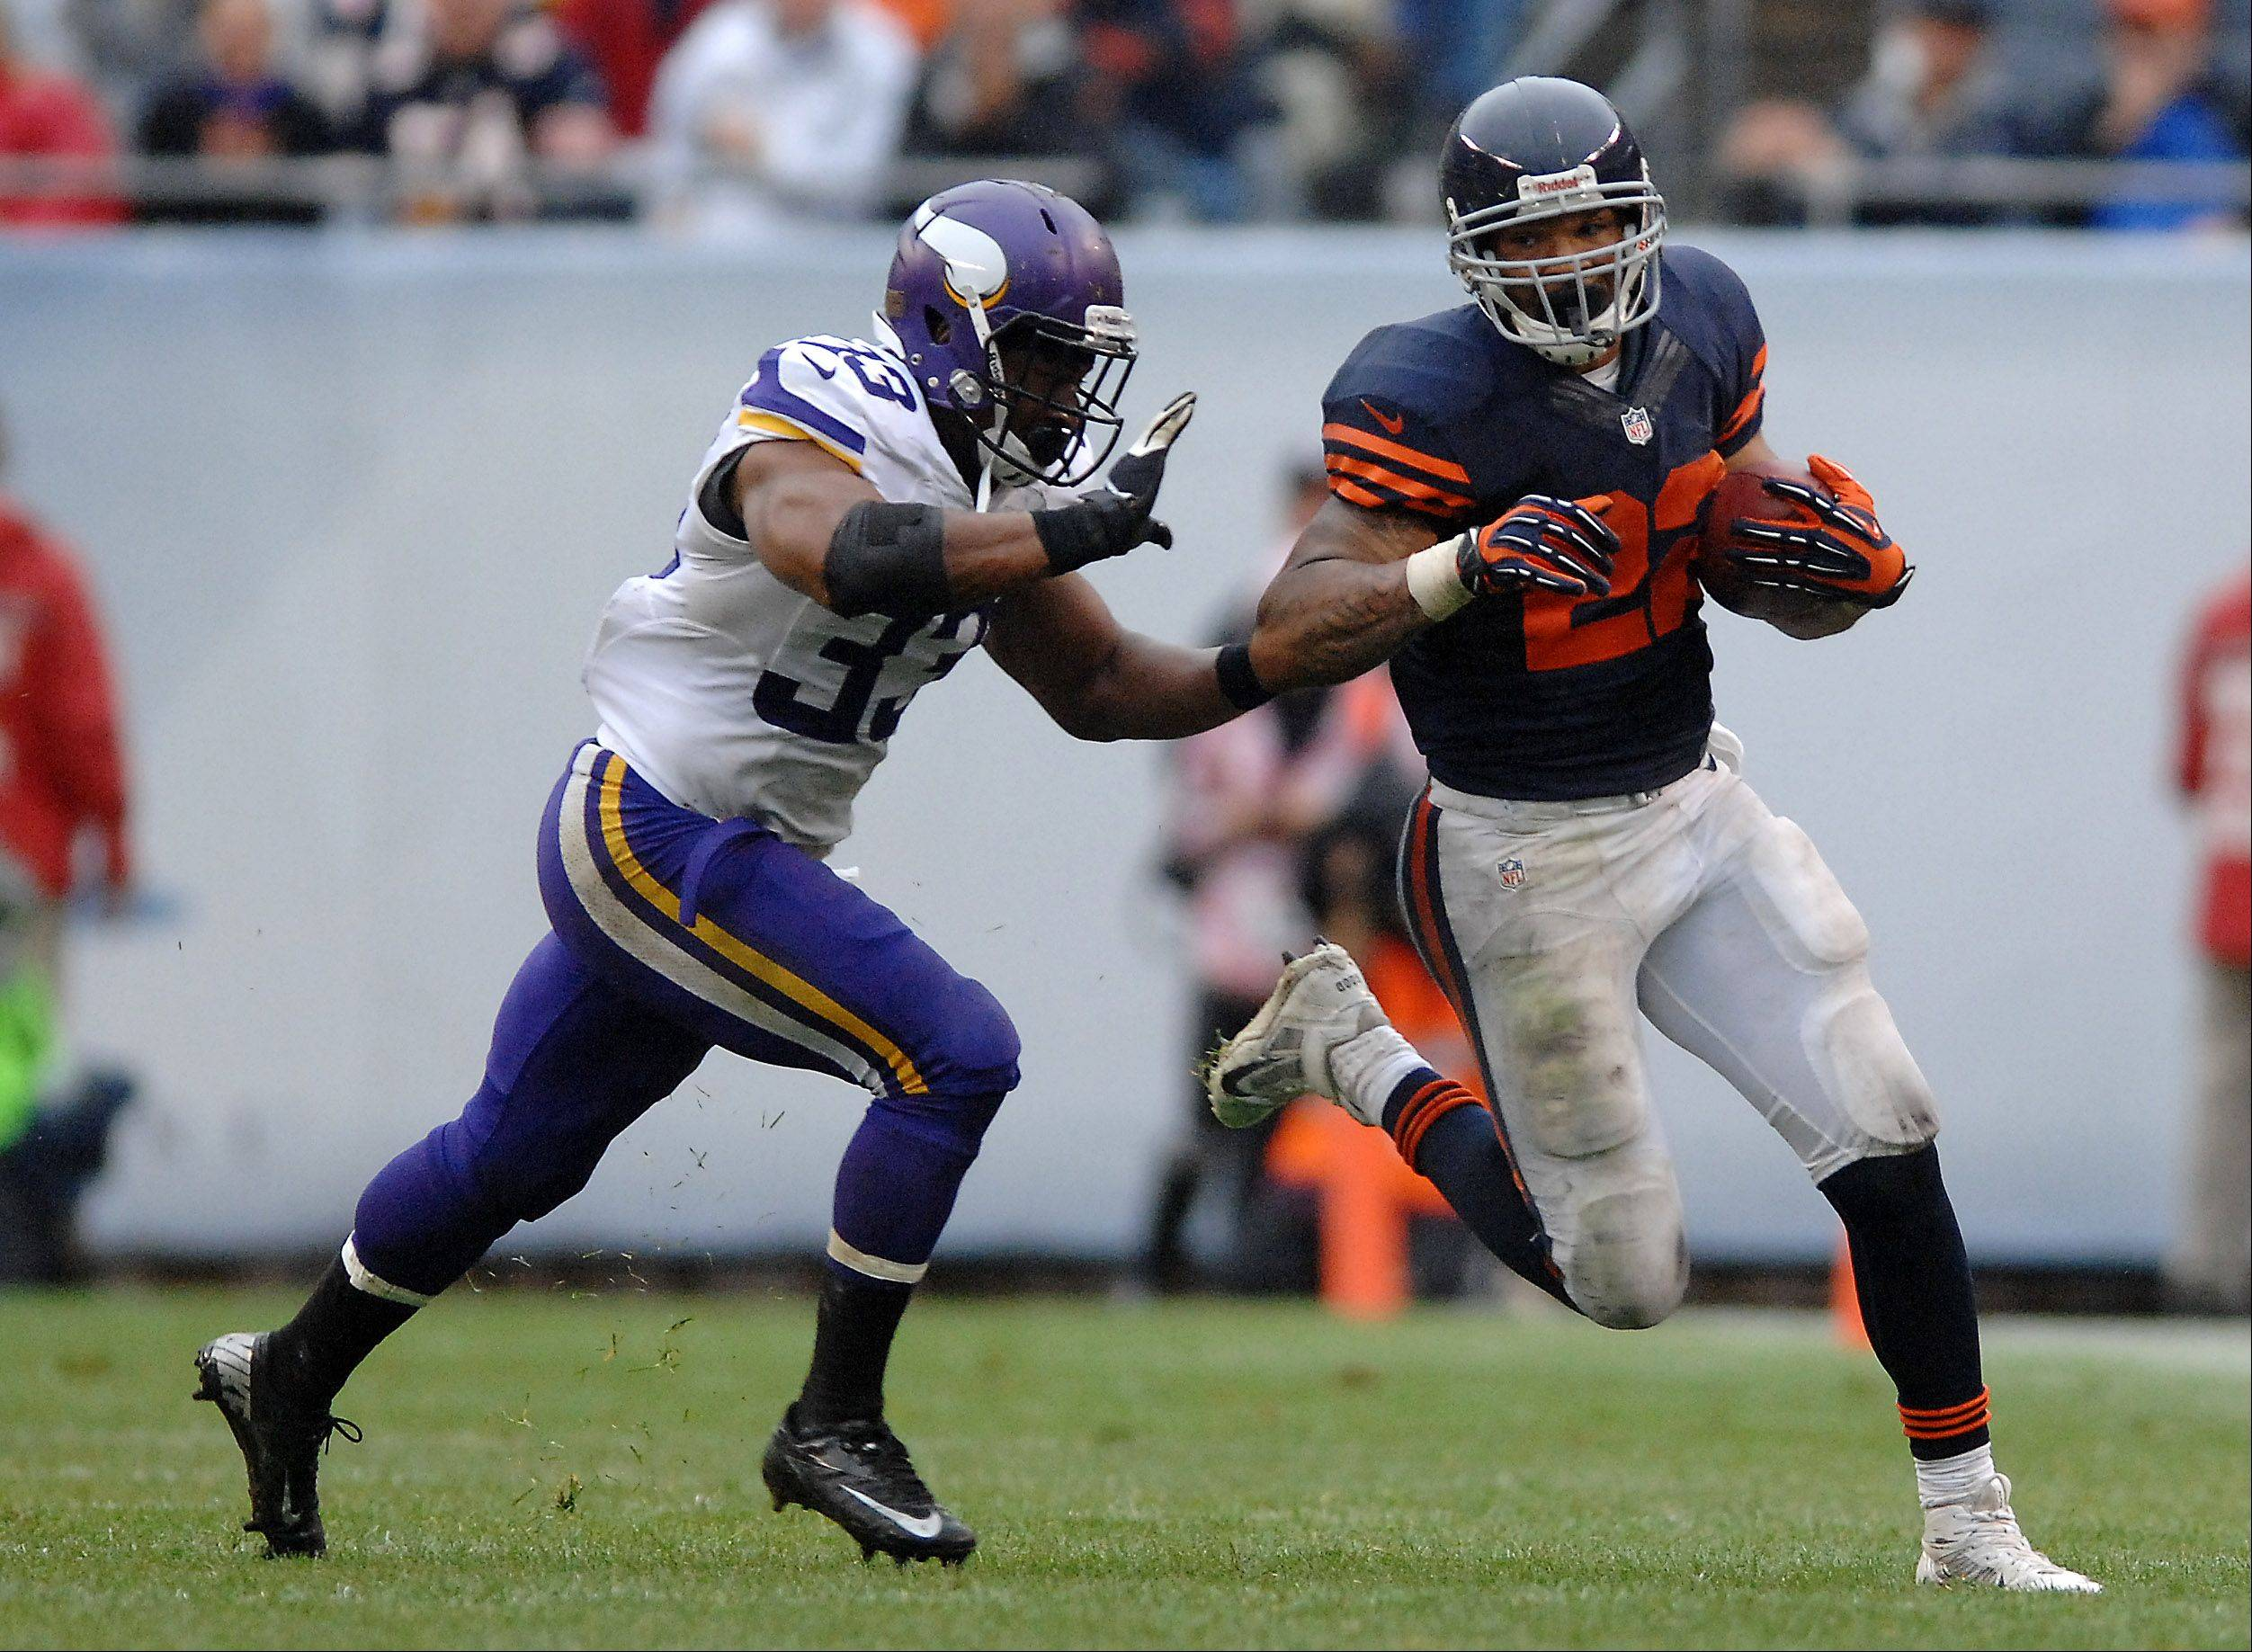 Chicago Bears running back Matt Forte (22) picks up some yards after the catch with Minnesota Vikings strong safety Jamarca Sanford (33) giving chase during Sunday's game at Soldier Field in Chicago.